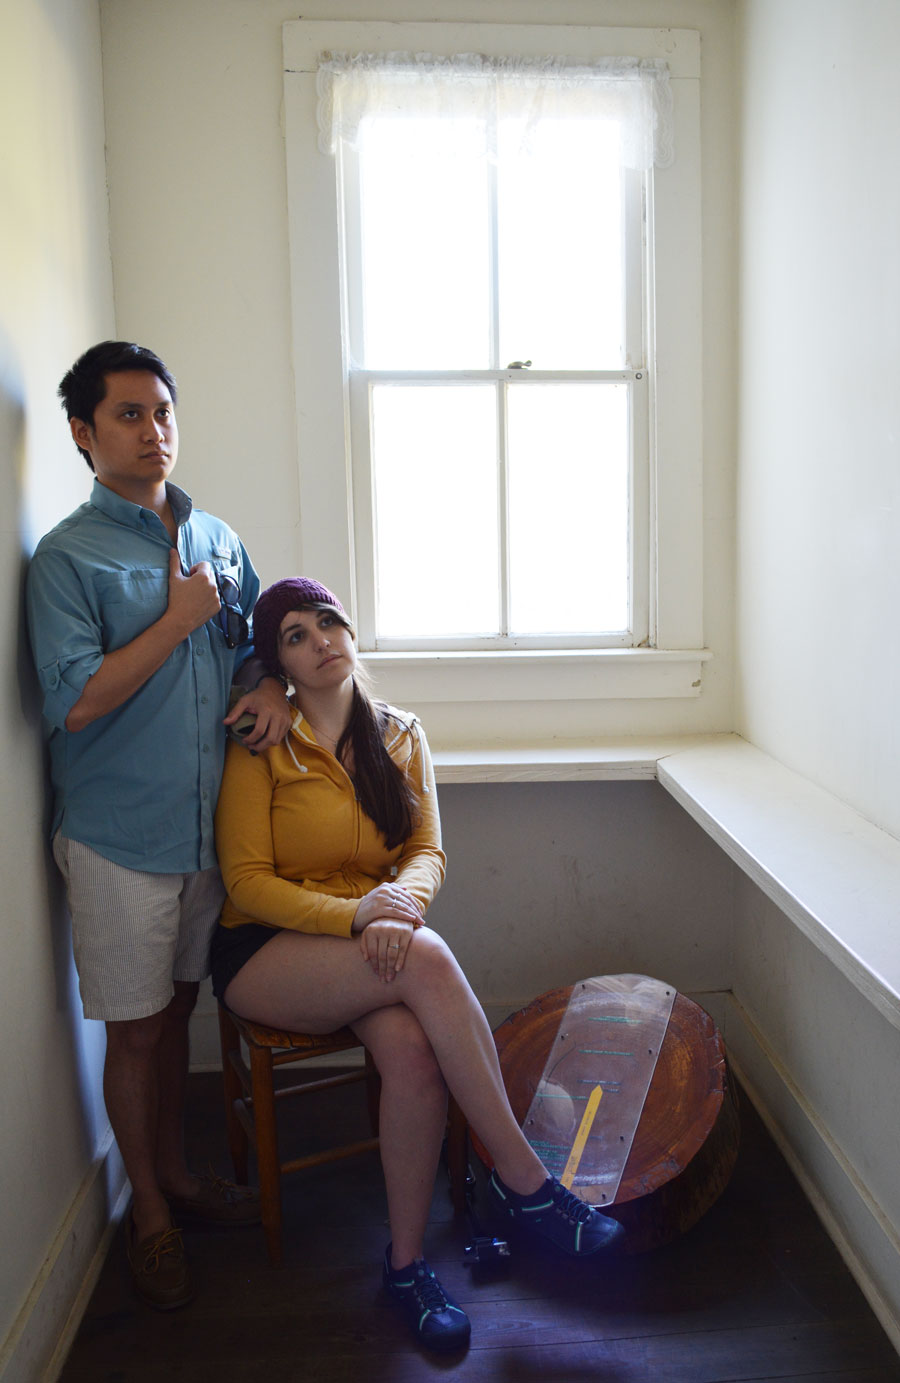 Meredith Lambert and Kevin Banogon in a small hallway in the Thursby House at Blue Springs.